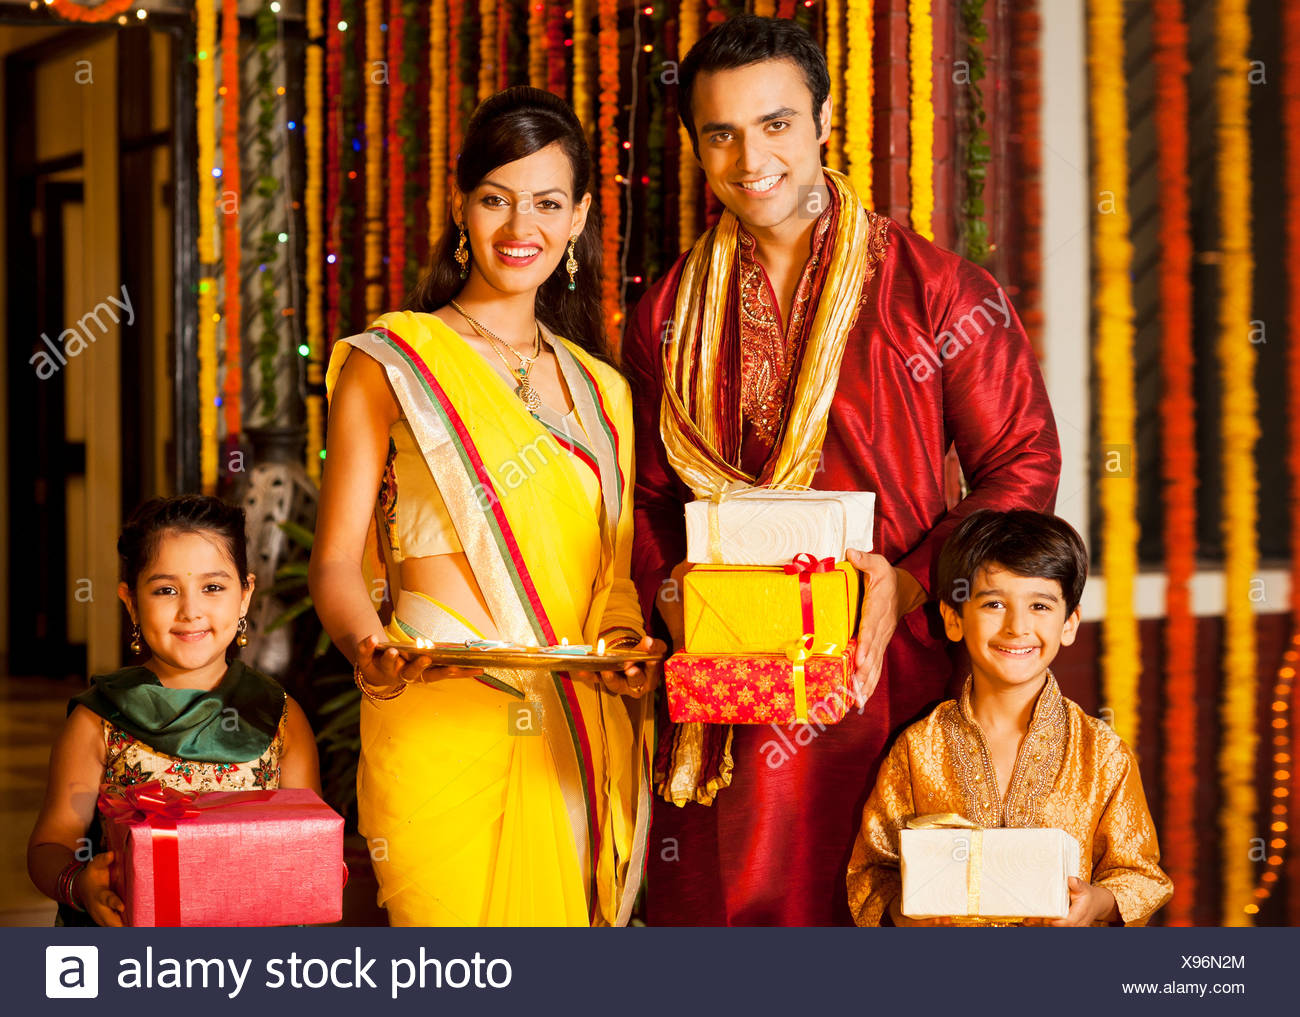 Family Looking Diwali Gifts Stock Photos  for Diwali Gifts For Family  53kxo